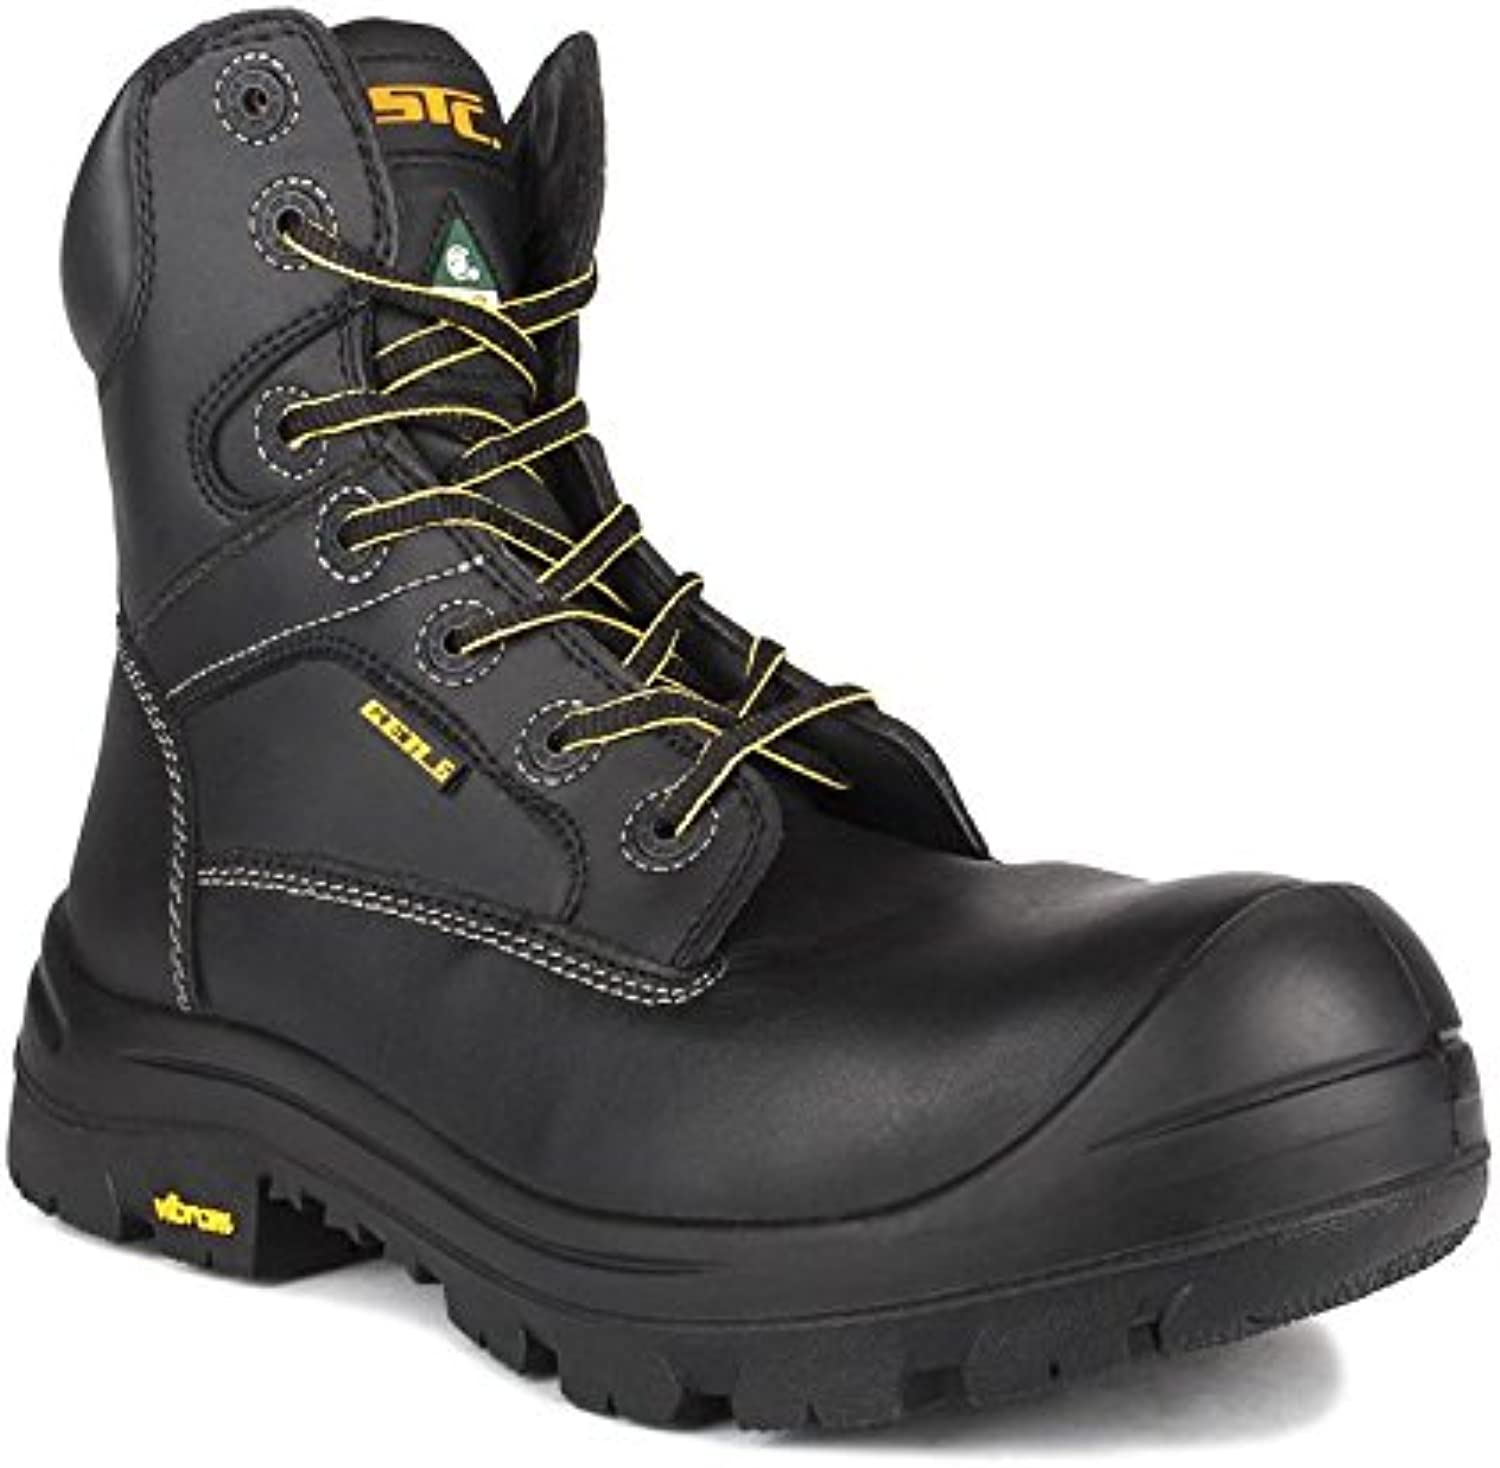 STC Morgan Men's Work Boot CSA, Black